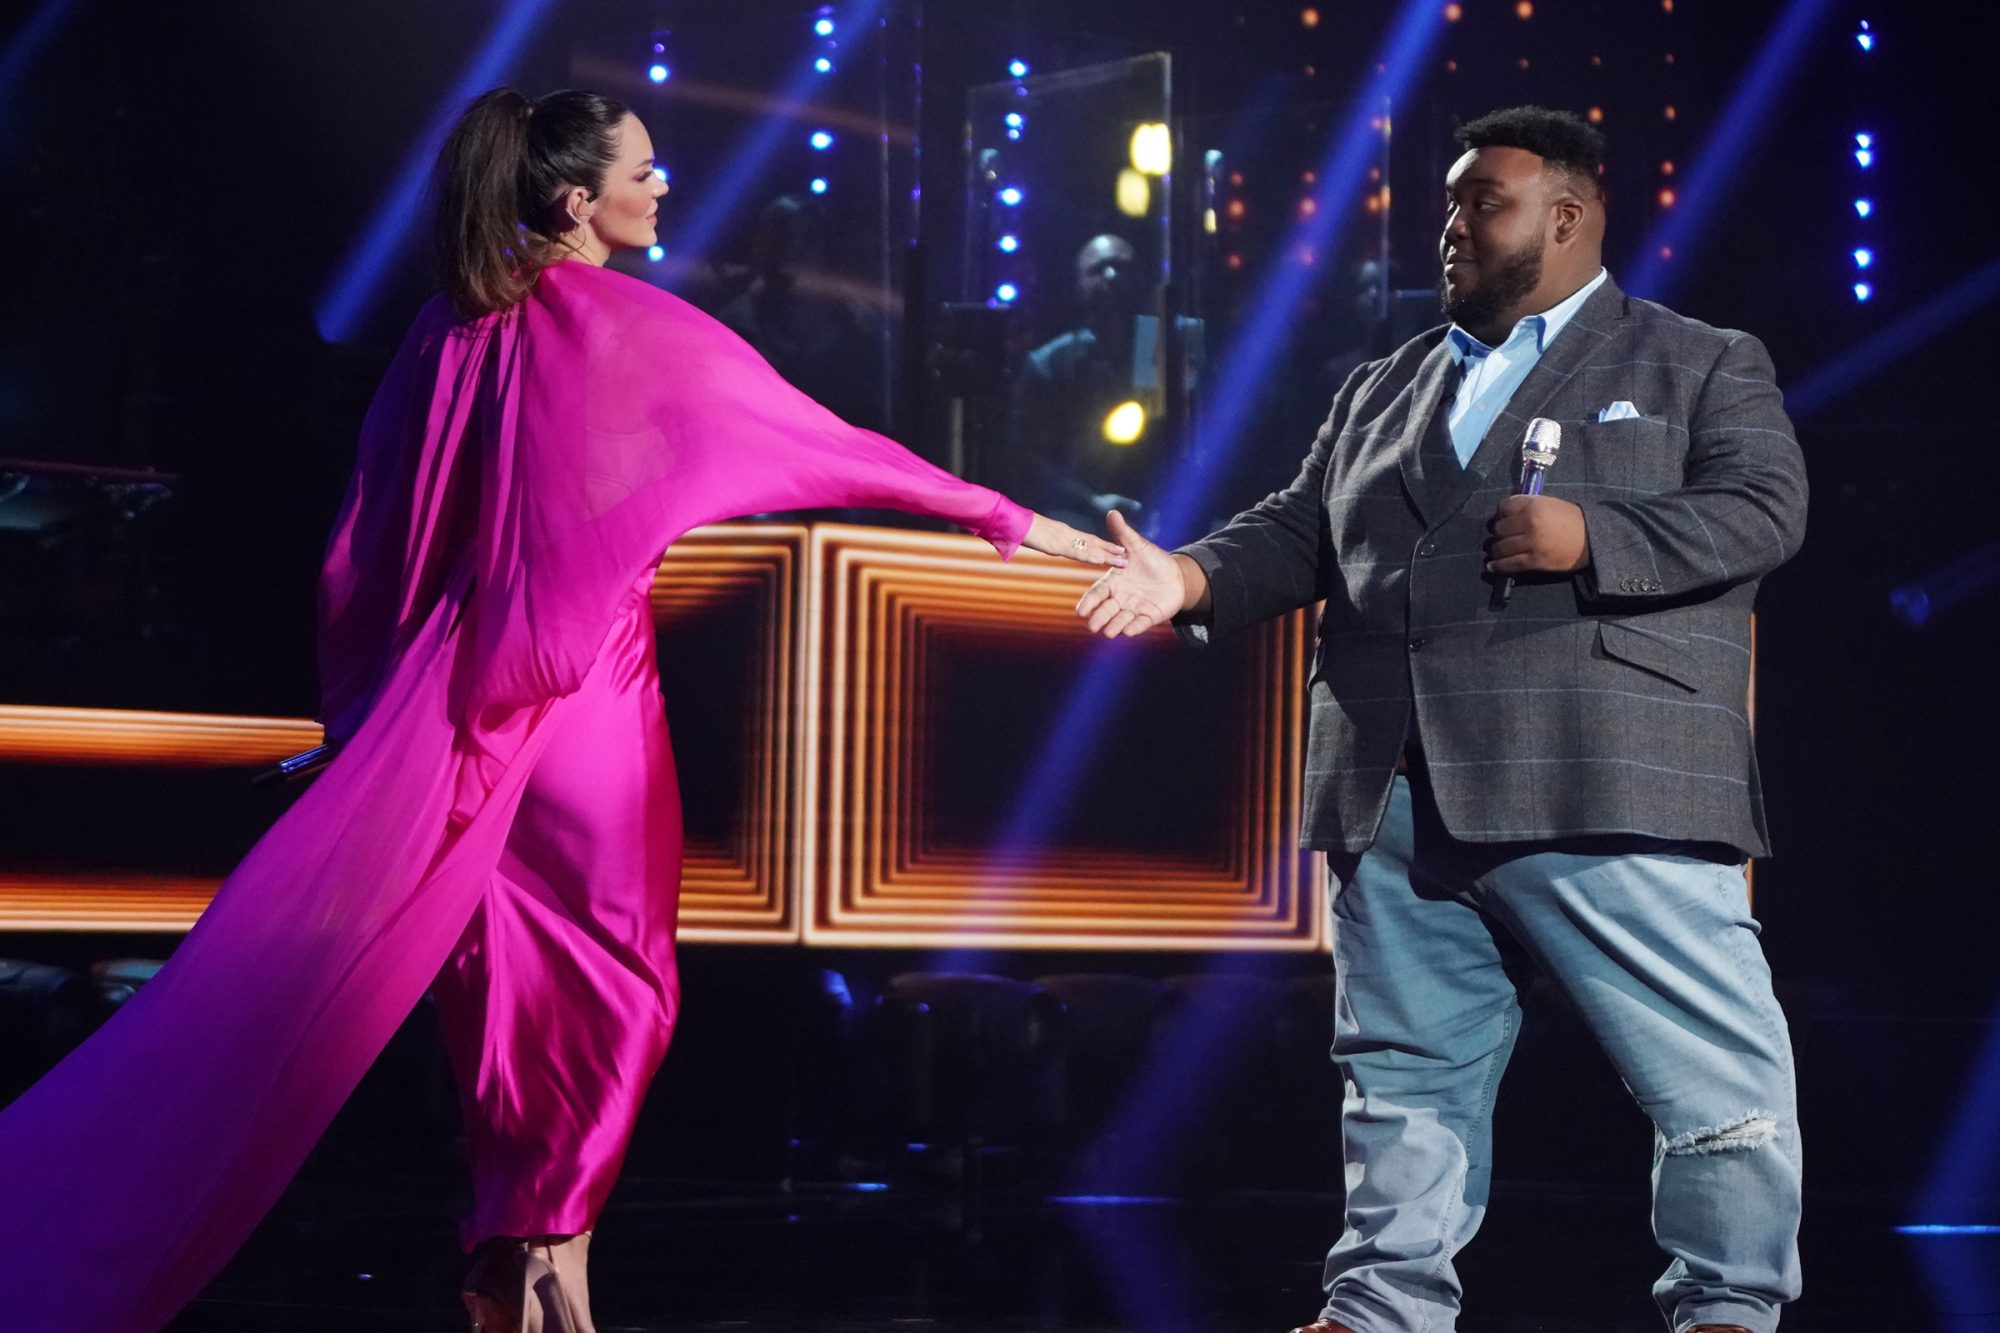 Katharine McPhee Joins Idol Contestant Willie Spence for Show-Stopping Duet of 'The Prayer'